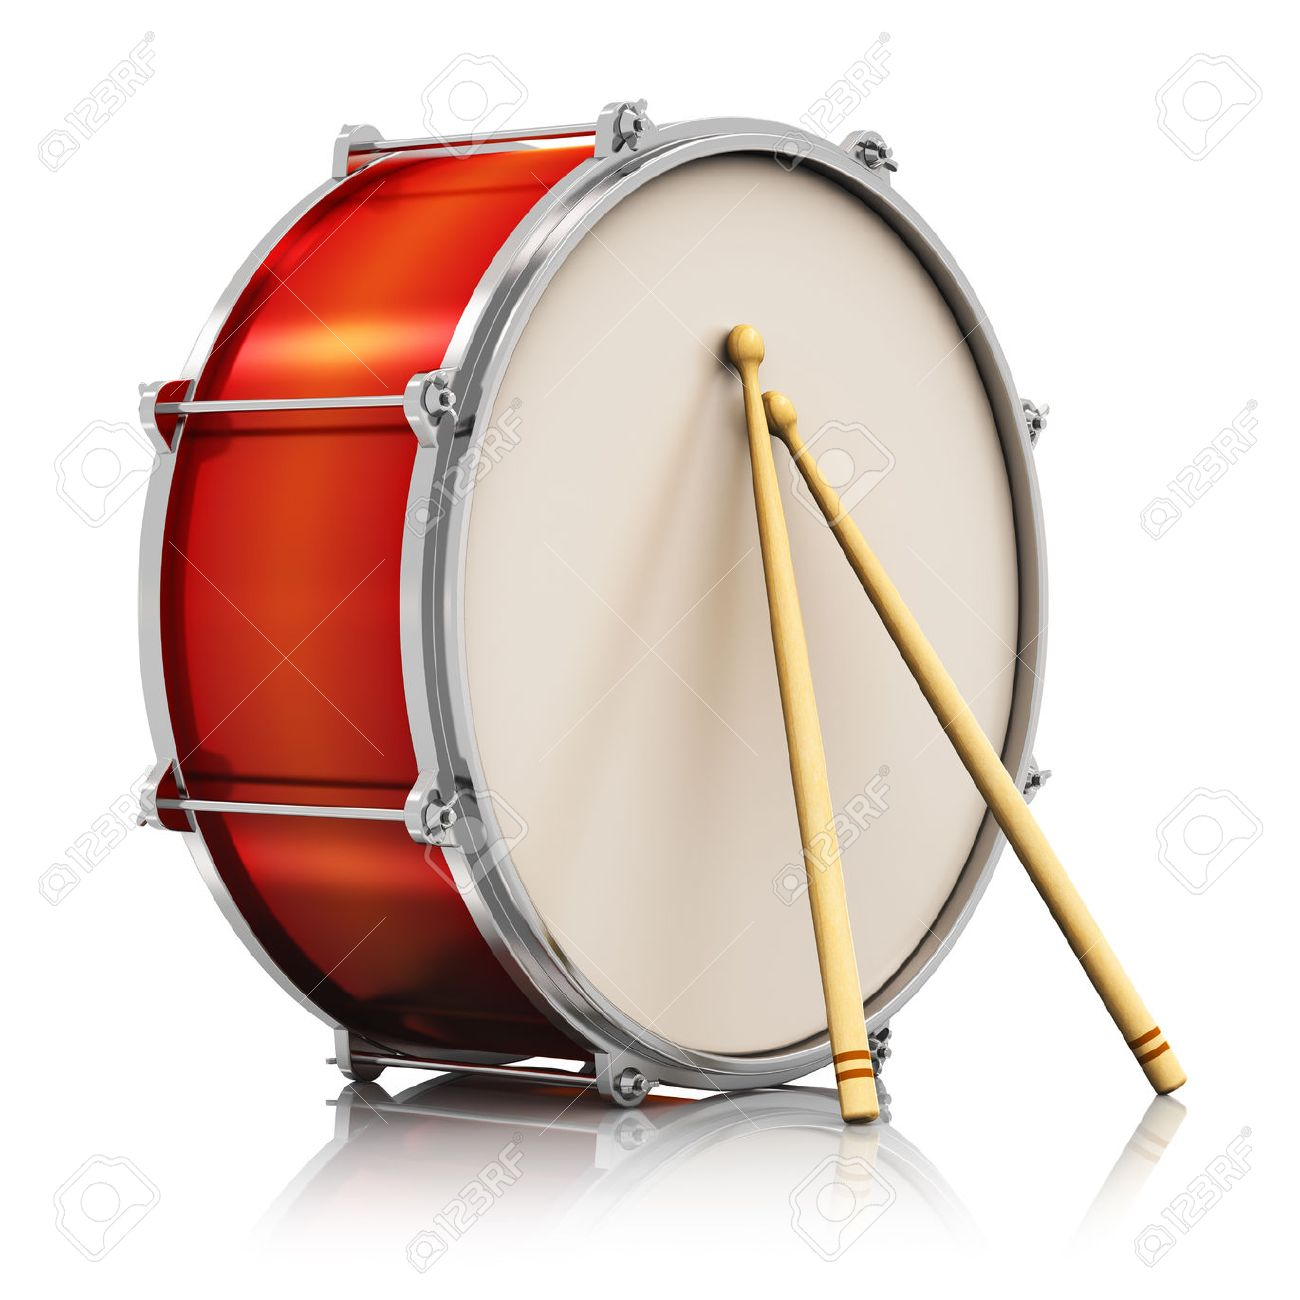 Creative abstract musical instrument concept  red drum with pair of drumsticks isolated on white background with reflection effect Stock Photo - 23095443